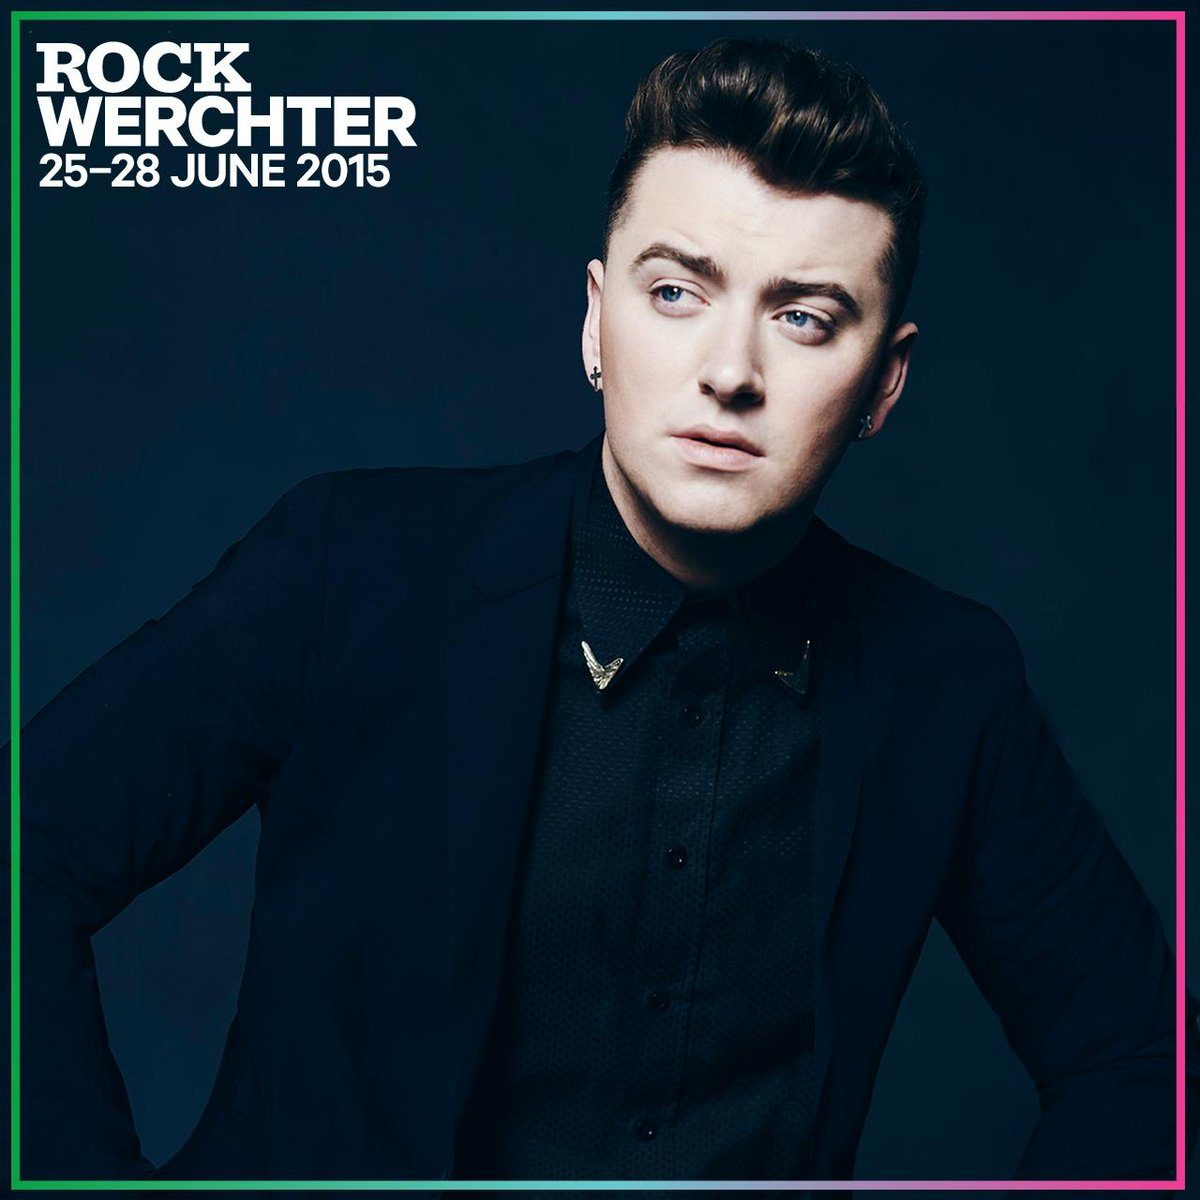 Caribou Sam Smith Angus & Julia Stone et Death Cab For Cutie au Rock Werchter 2015 cacestculte